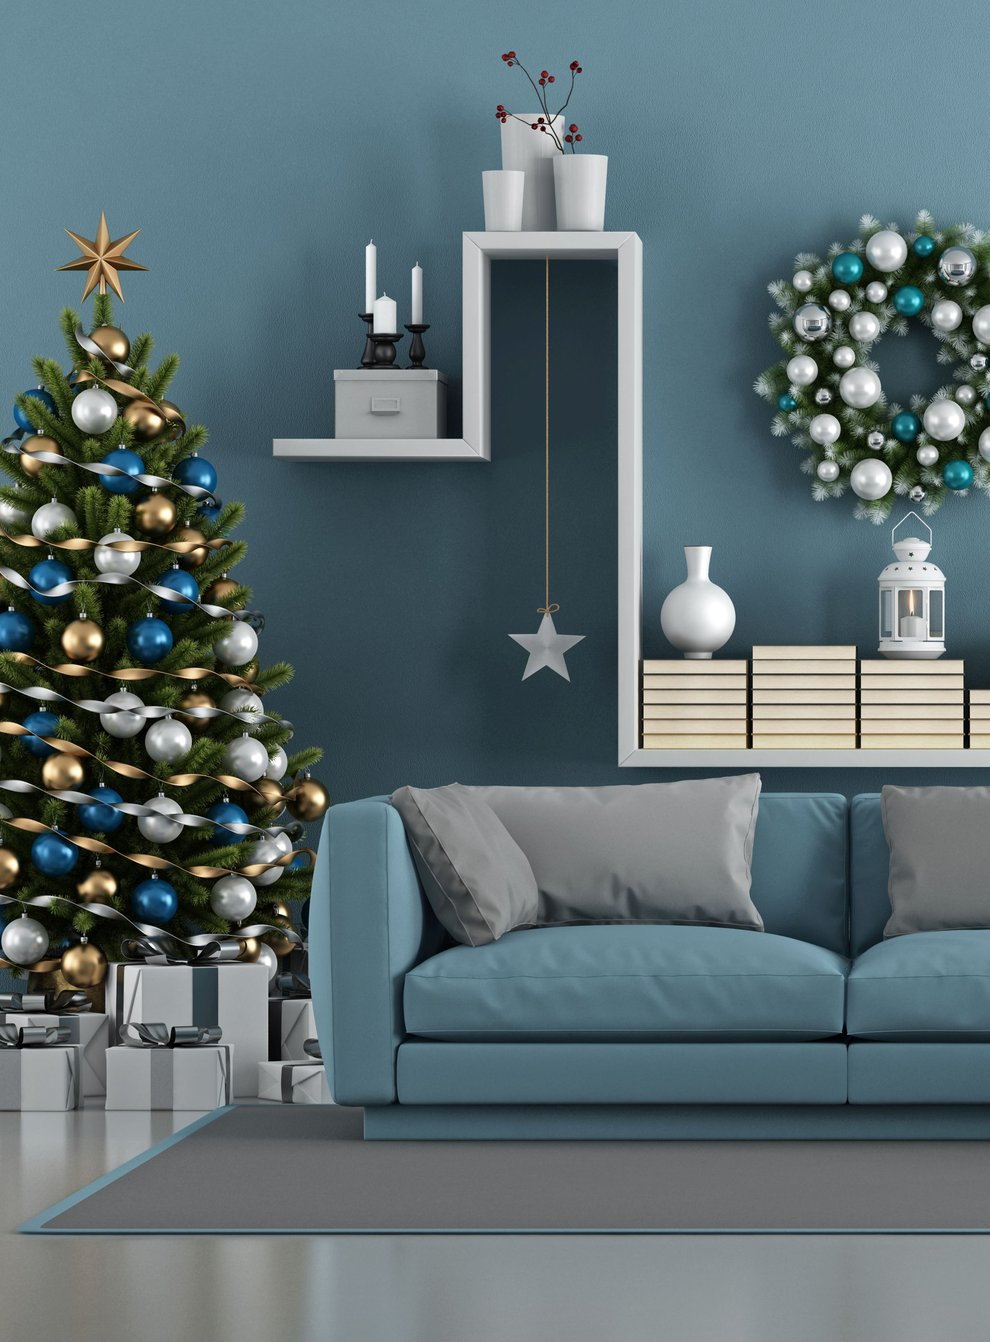 Clean and tidy living room with christmas tree, sofa and shelfing